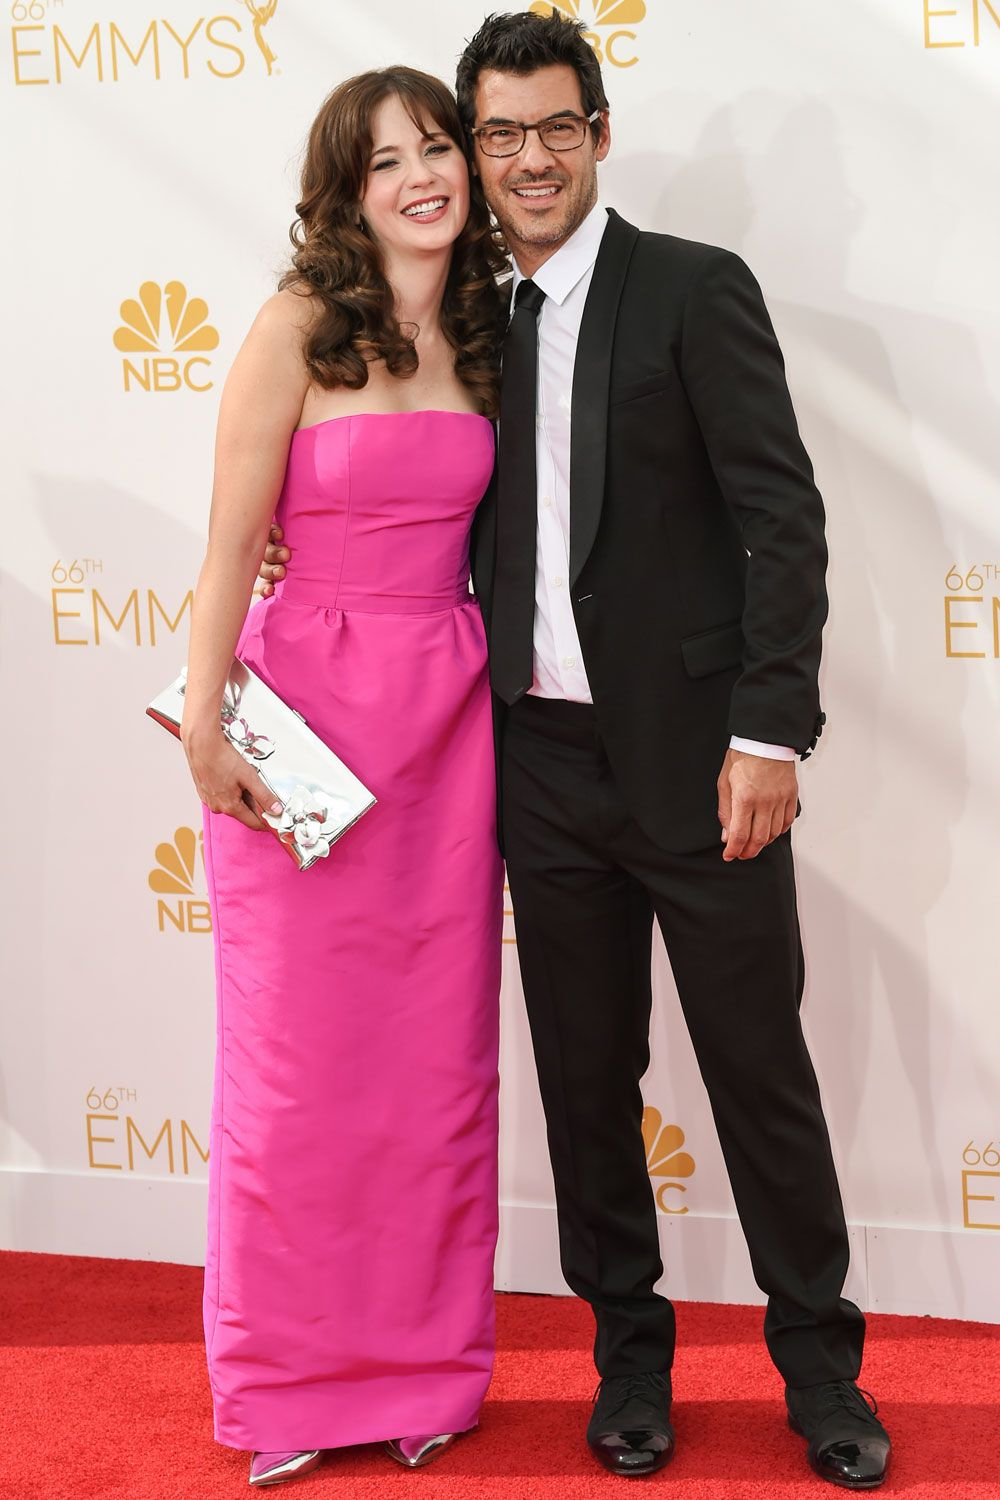 Celebrity Couples: The Most Stylish Pairings